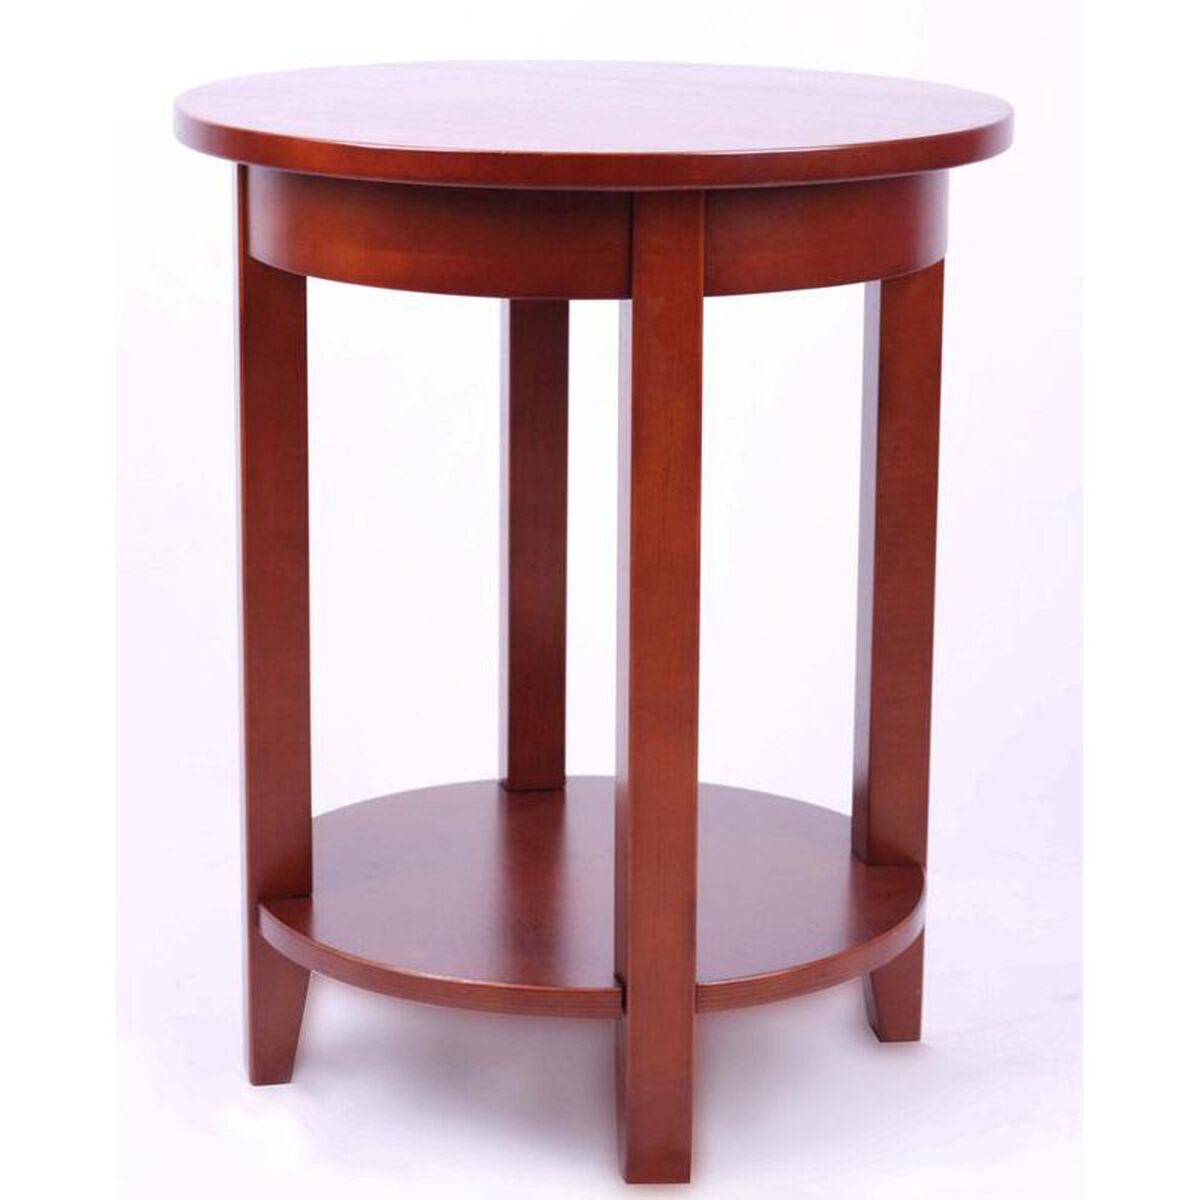 Our Shaker Cottage Wooden 19 Diameter Round Accent Table With Storage Shelf Cherry